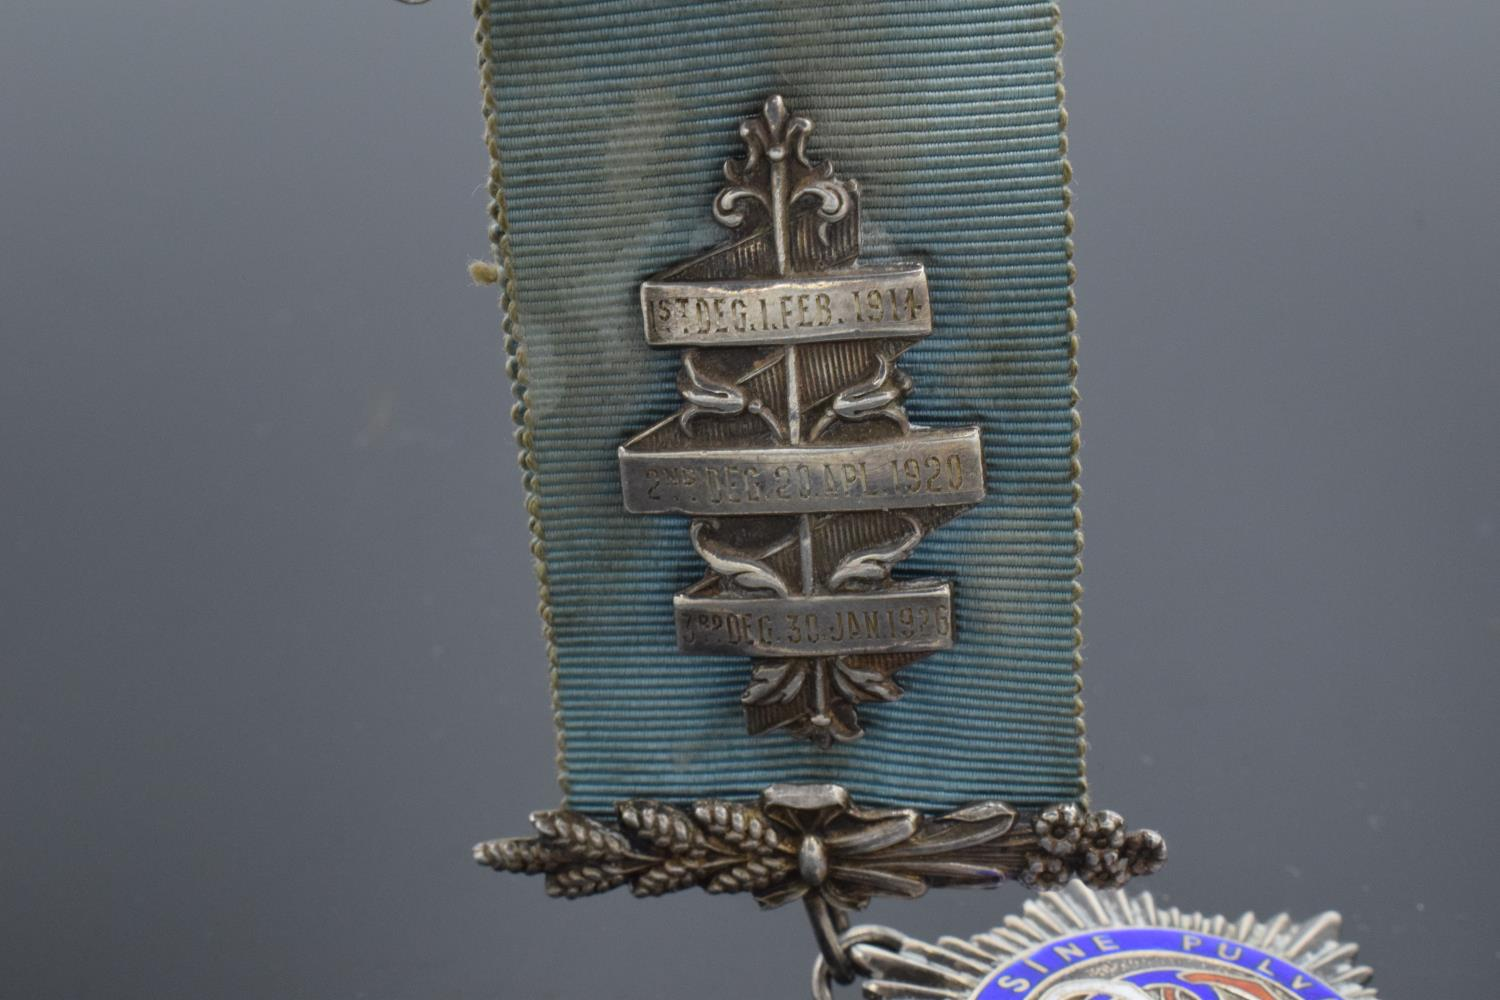 A silver medal and ribbon presented to Arthur J Thorne by the Royal Borough Lodge (GLE) Birmingham - Image 10 of 12